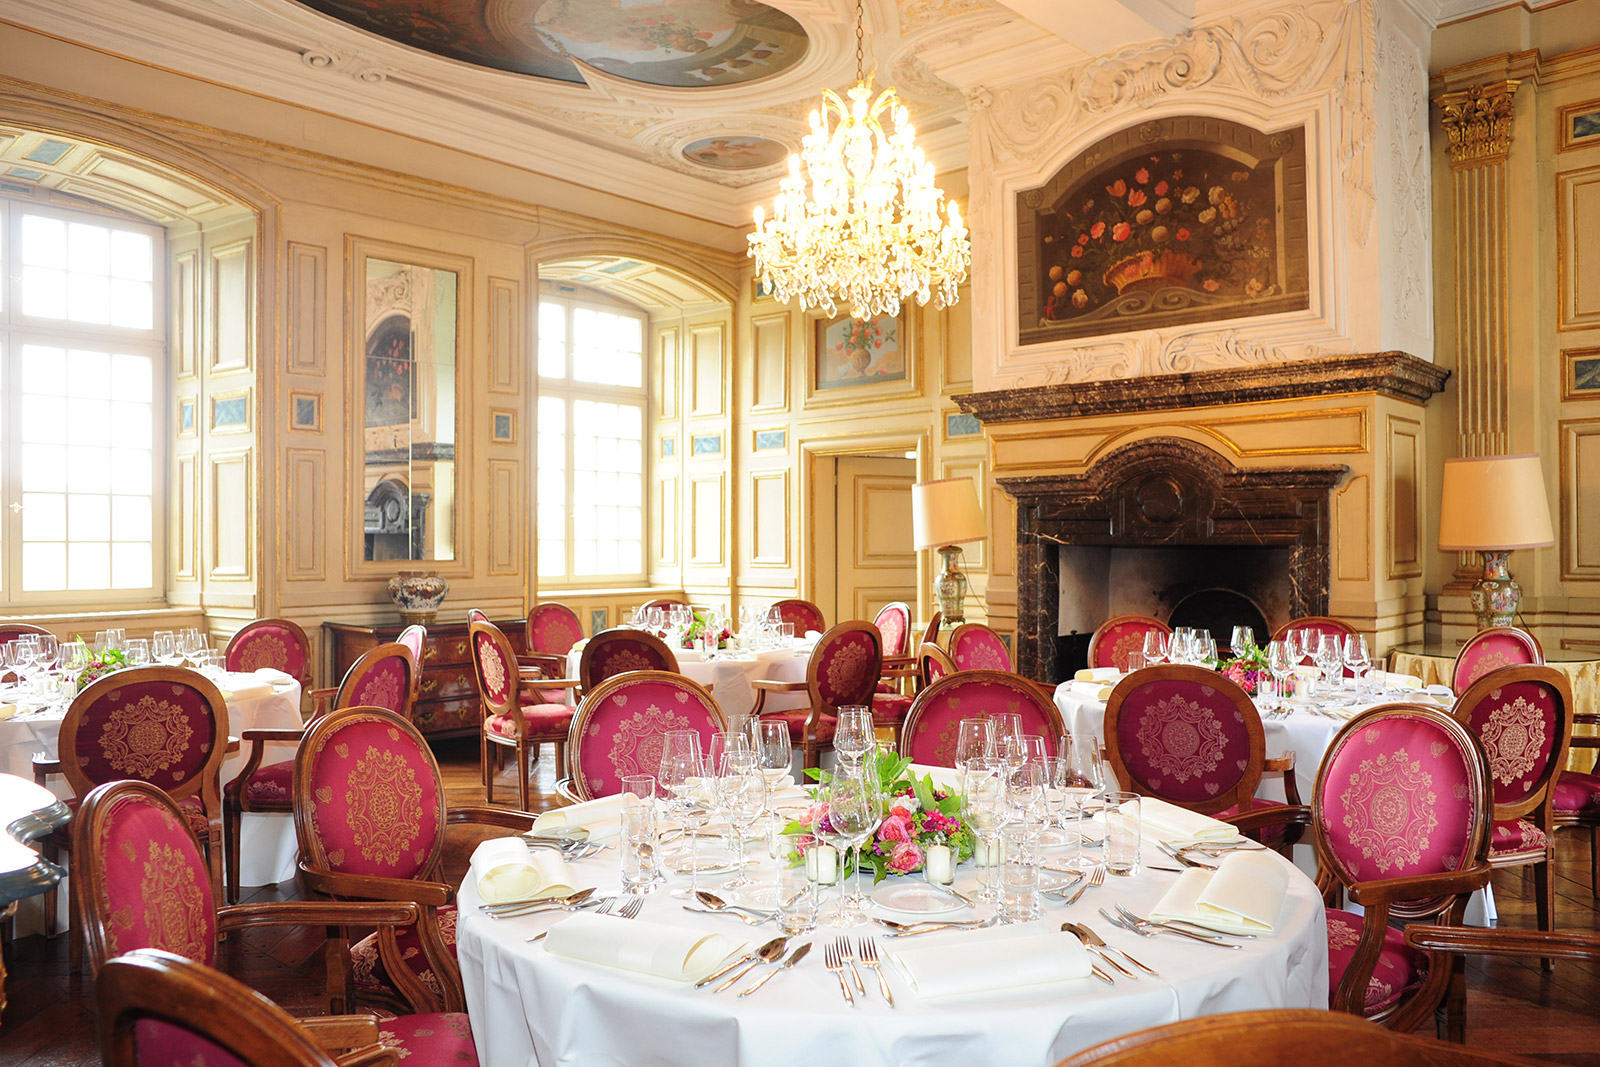 Dinner at Schloss Ehreshoven for guests